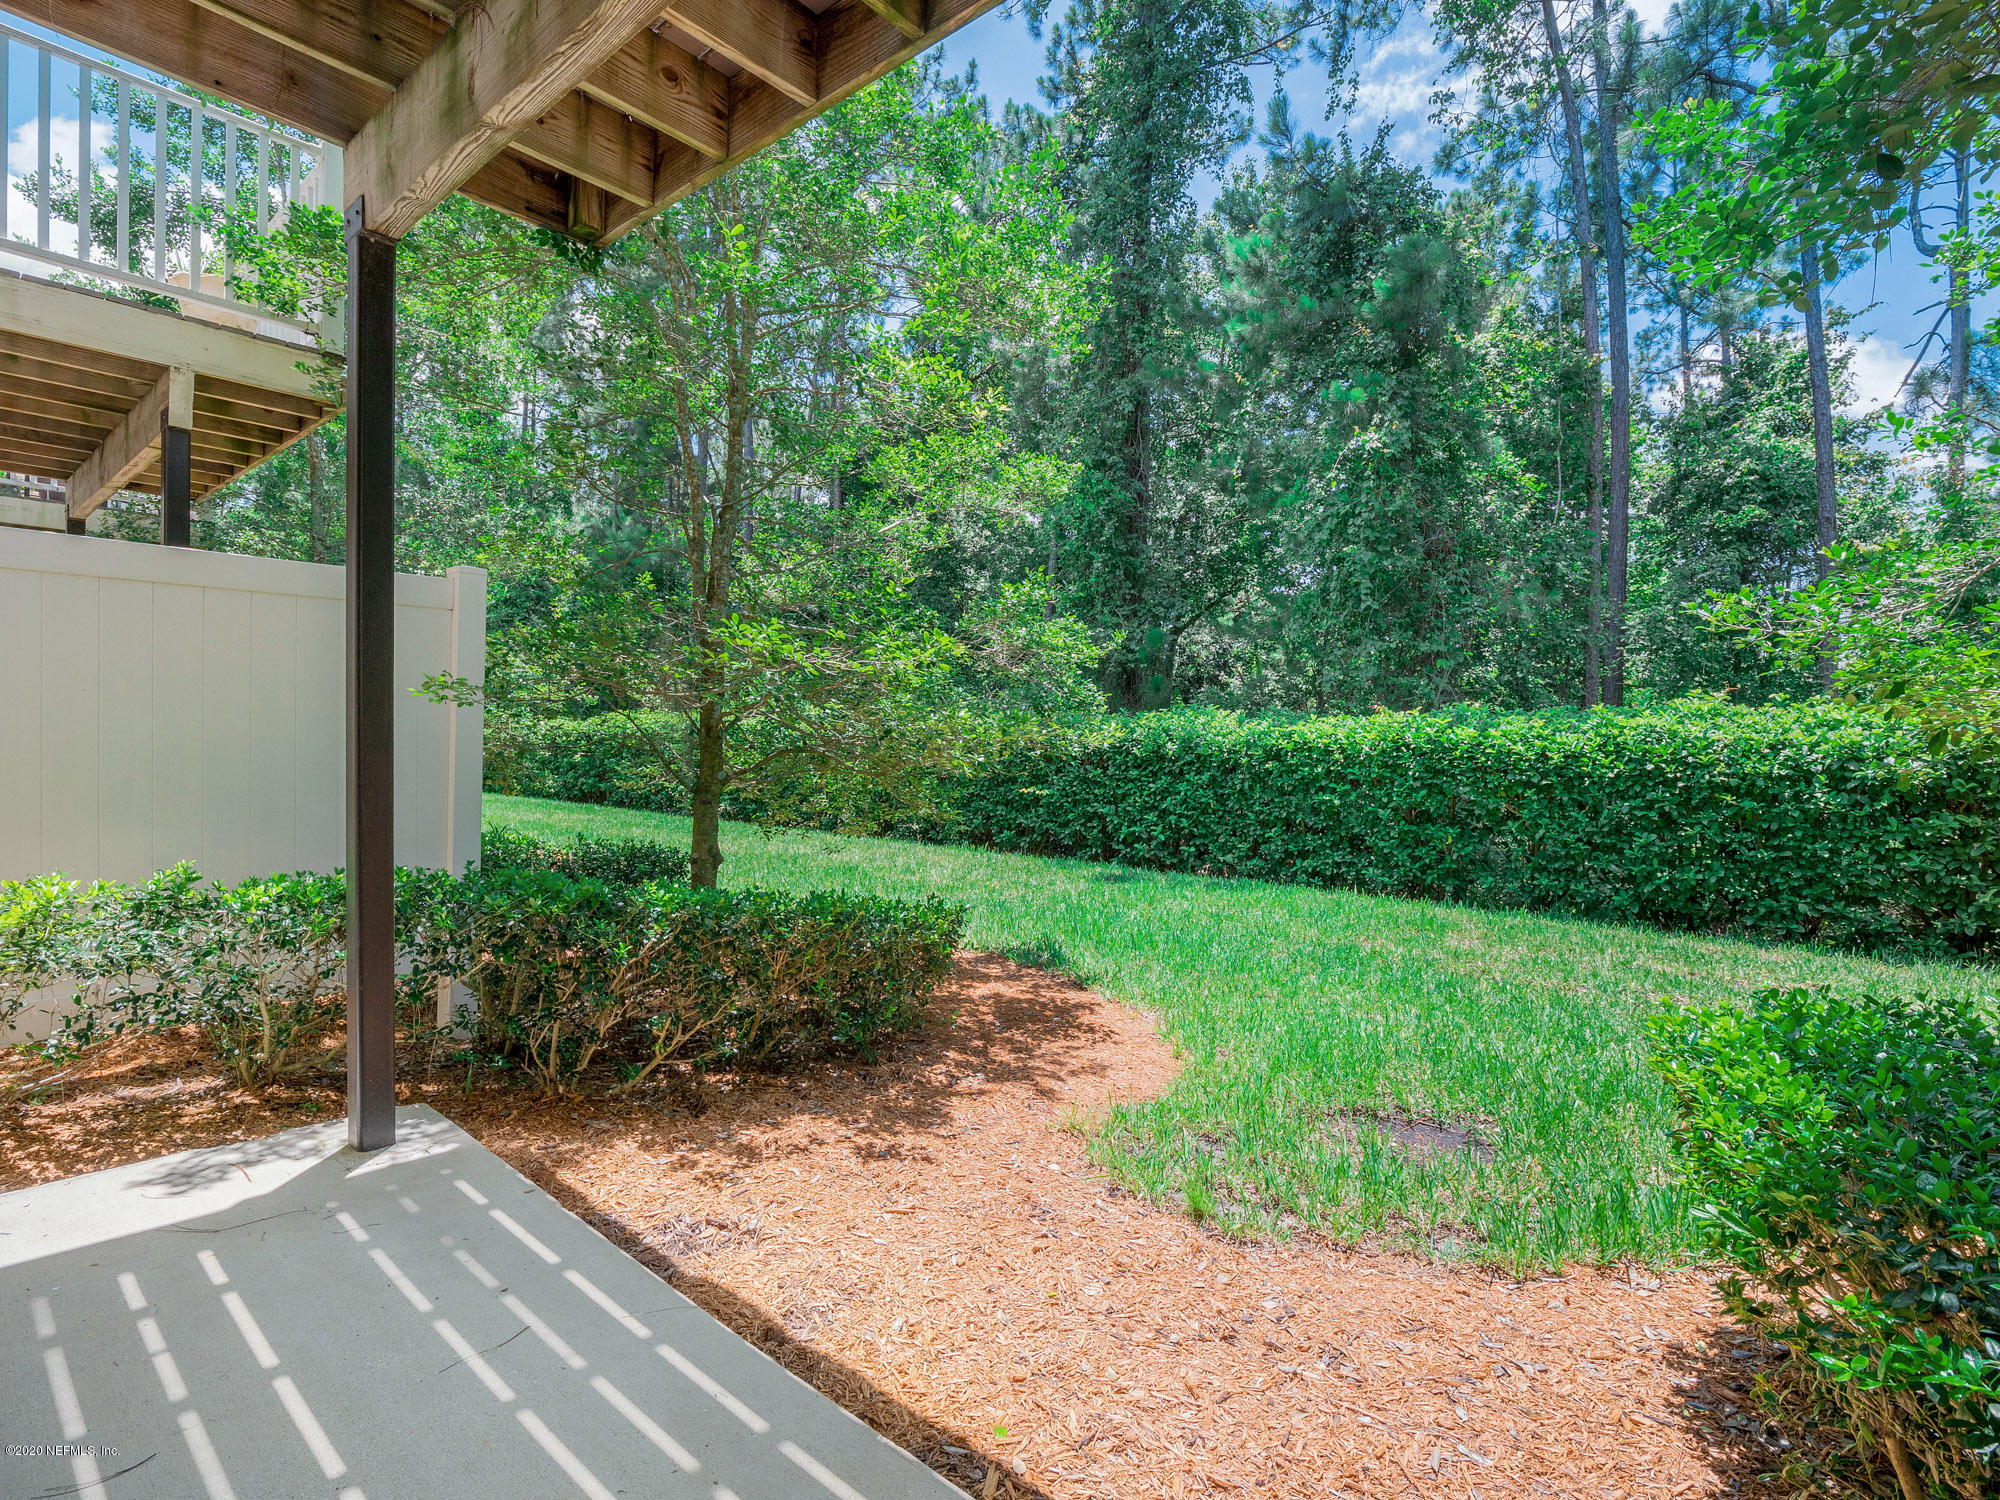 4532 CAPITAL DOME, JACKSONVILLE, FLORIDA 32246, 3 Bedrooms Bedrooms, ,3 BathroomsBathrooms,Residential,For sale,CAPITAL DOME,1056756